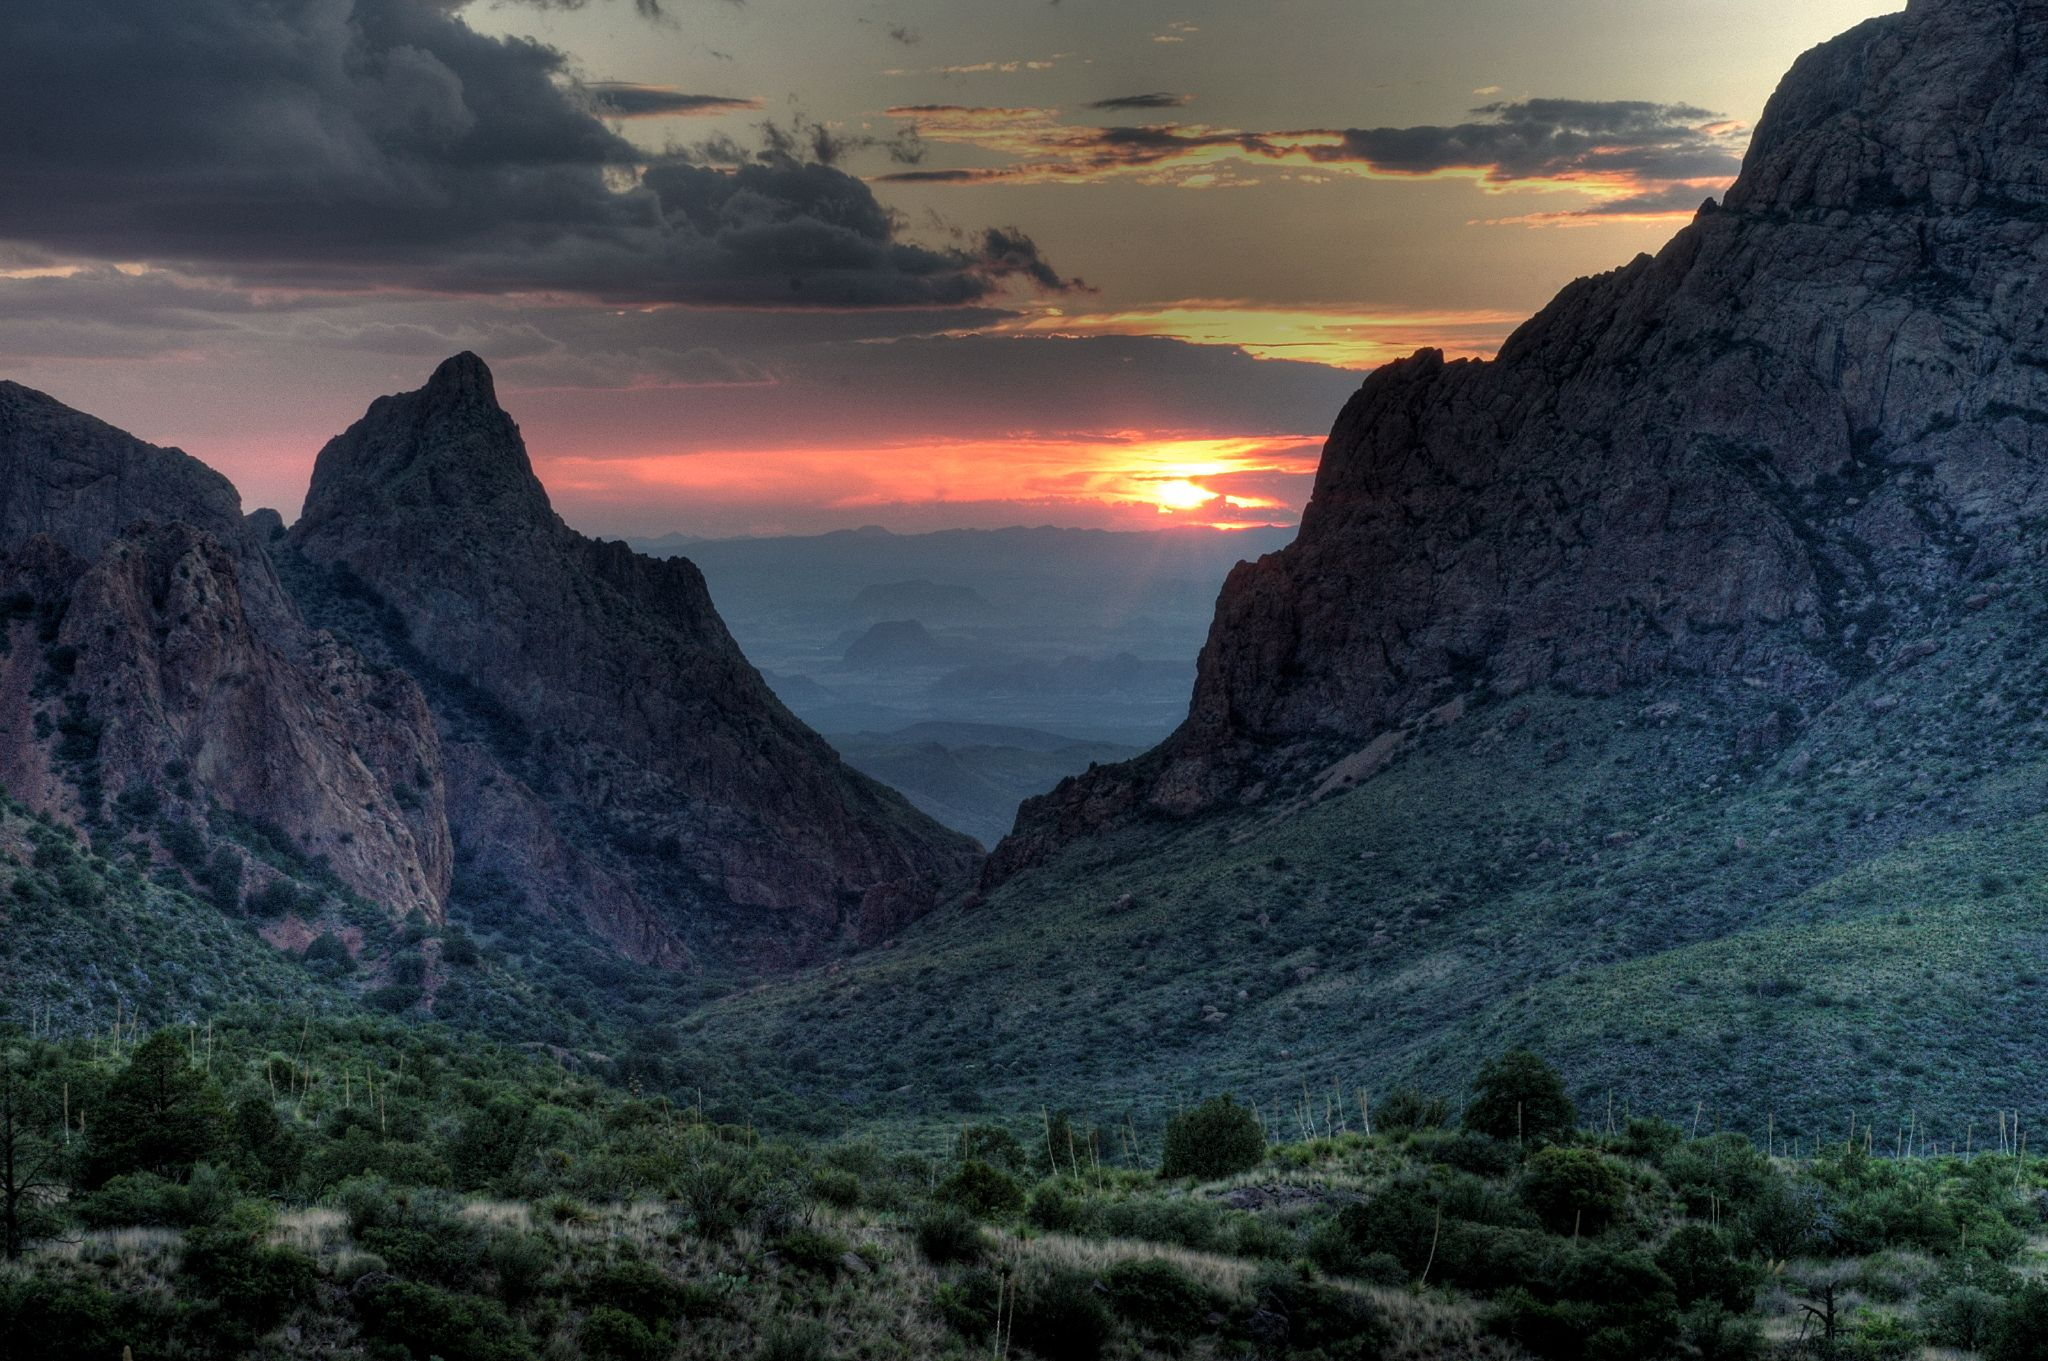 Big Bend National Park in West Texas.